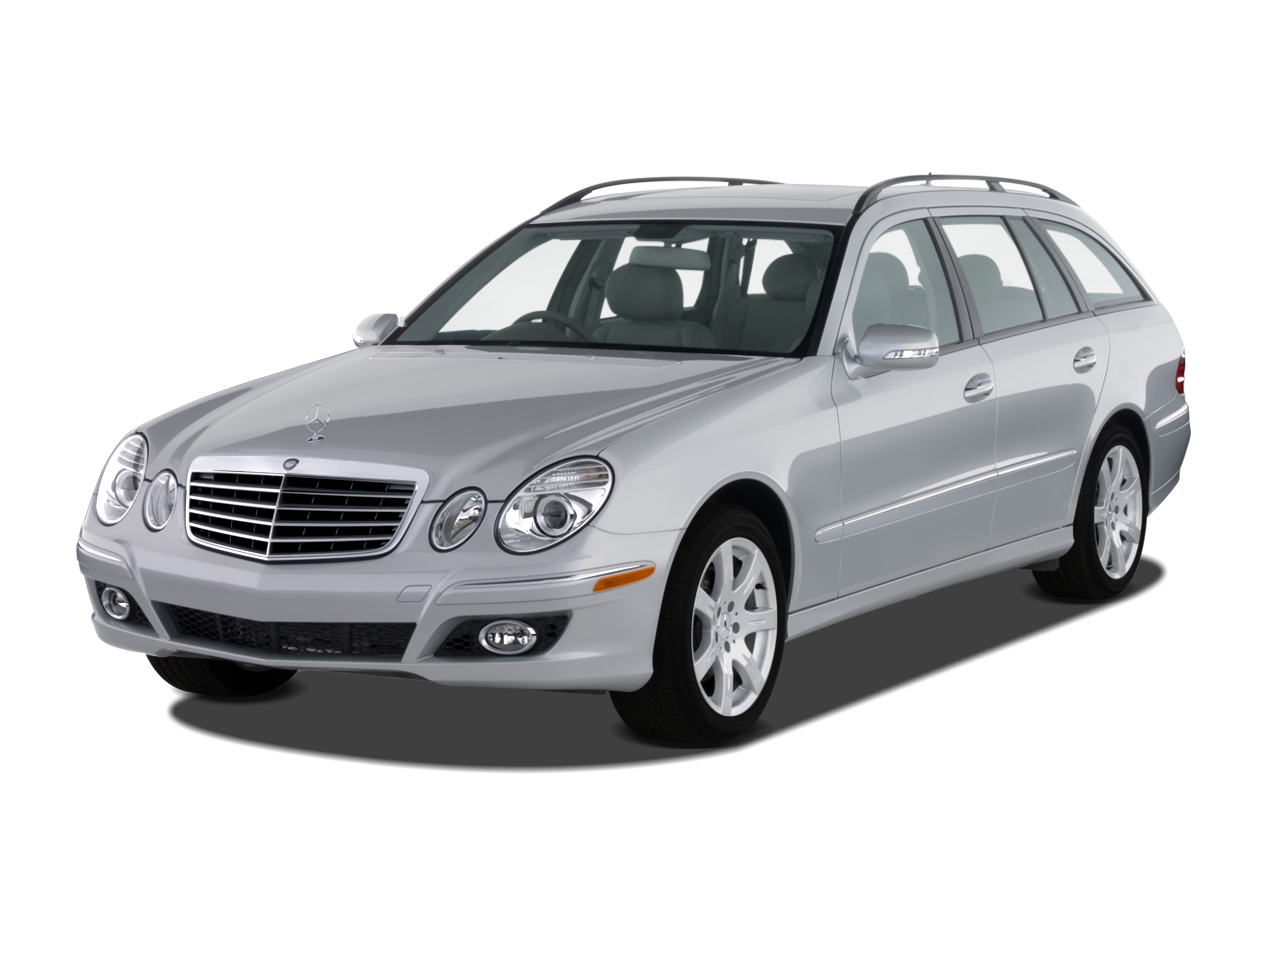 2008 Mercedes Benz E Class Latest News Features And